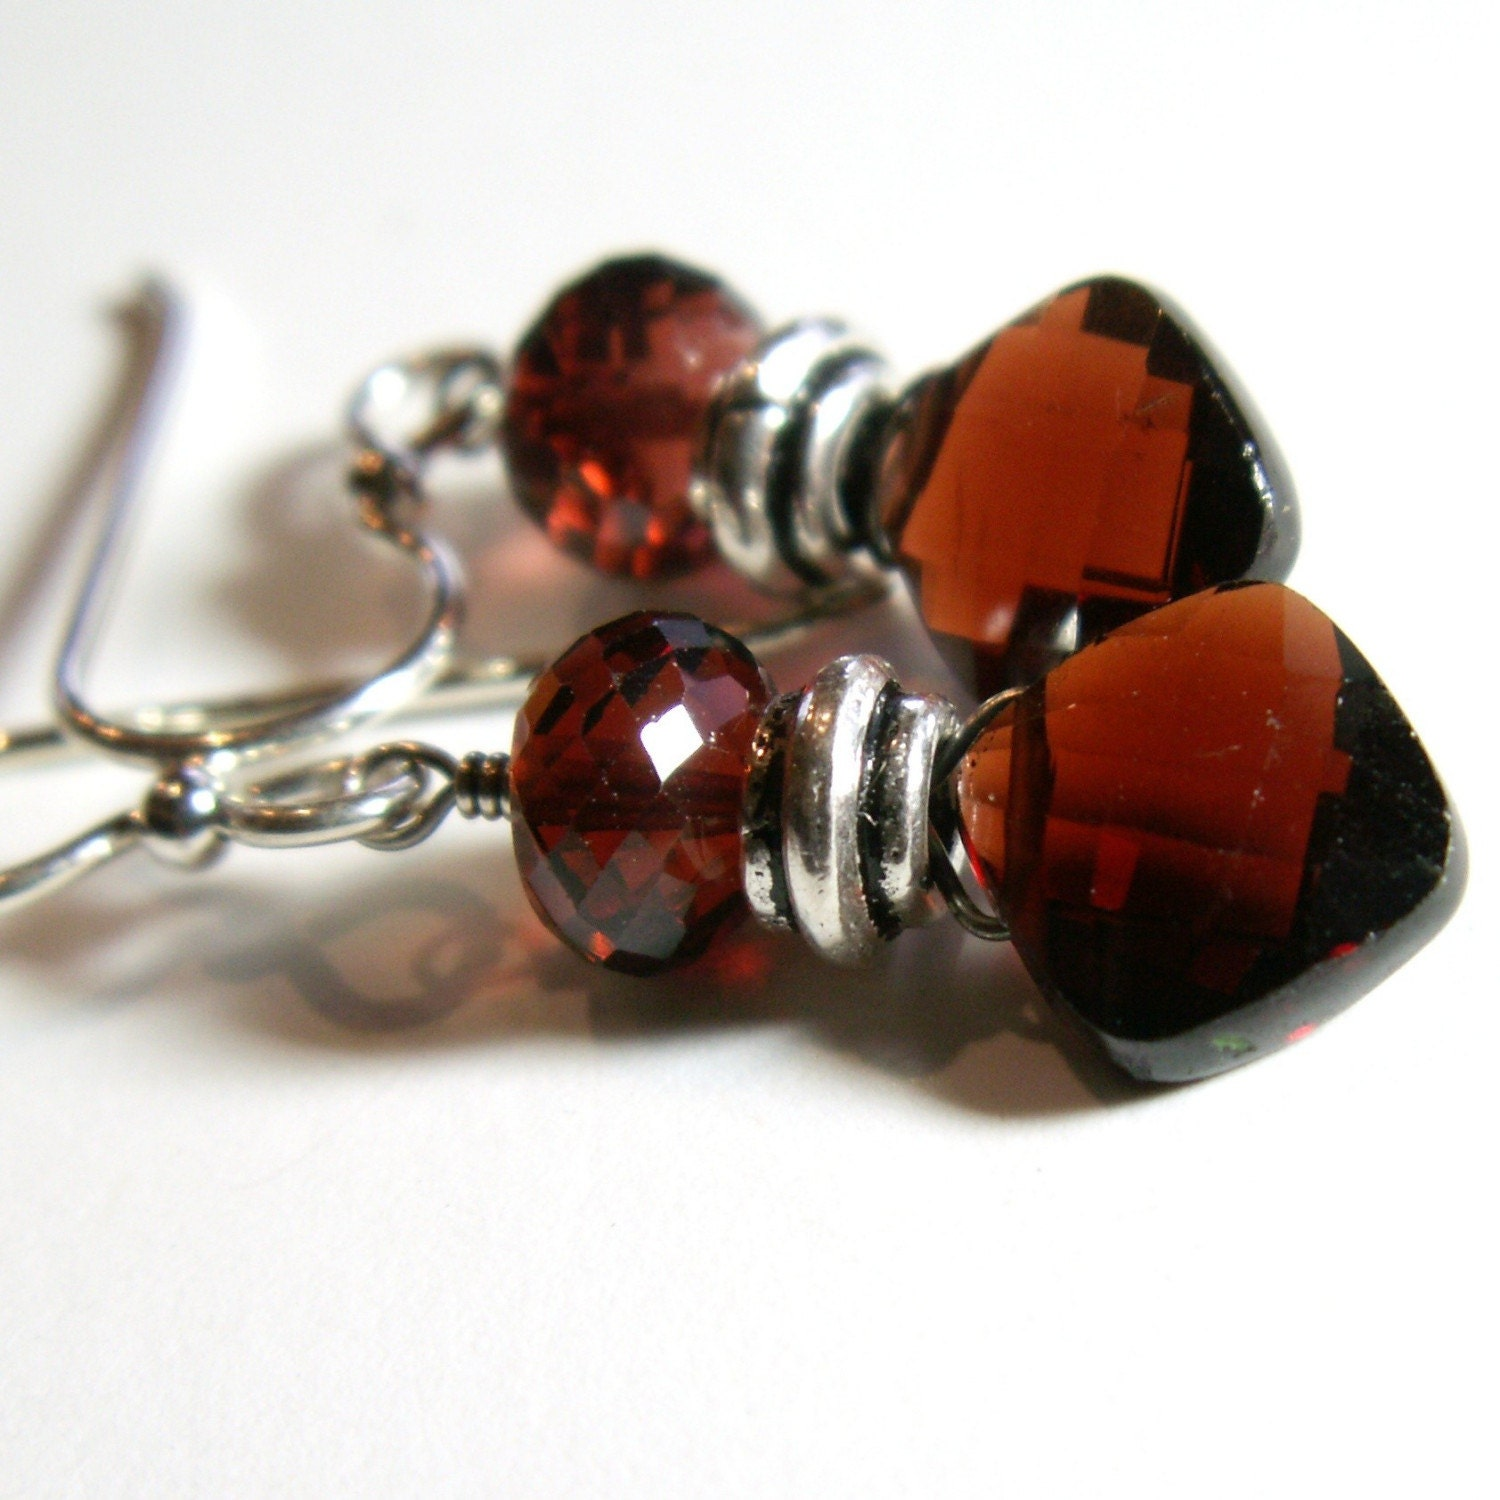 sterling silver earrings garnets briolette faceted red burgundy